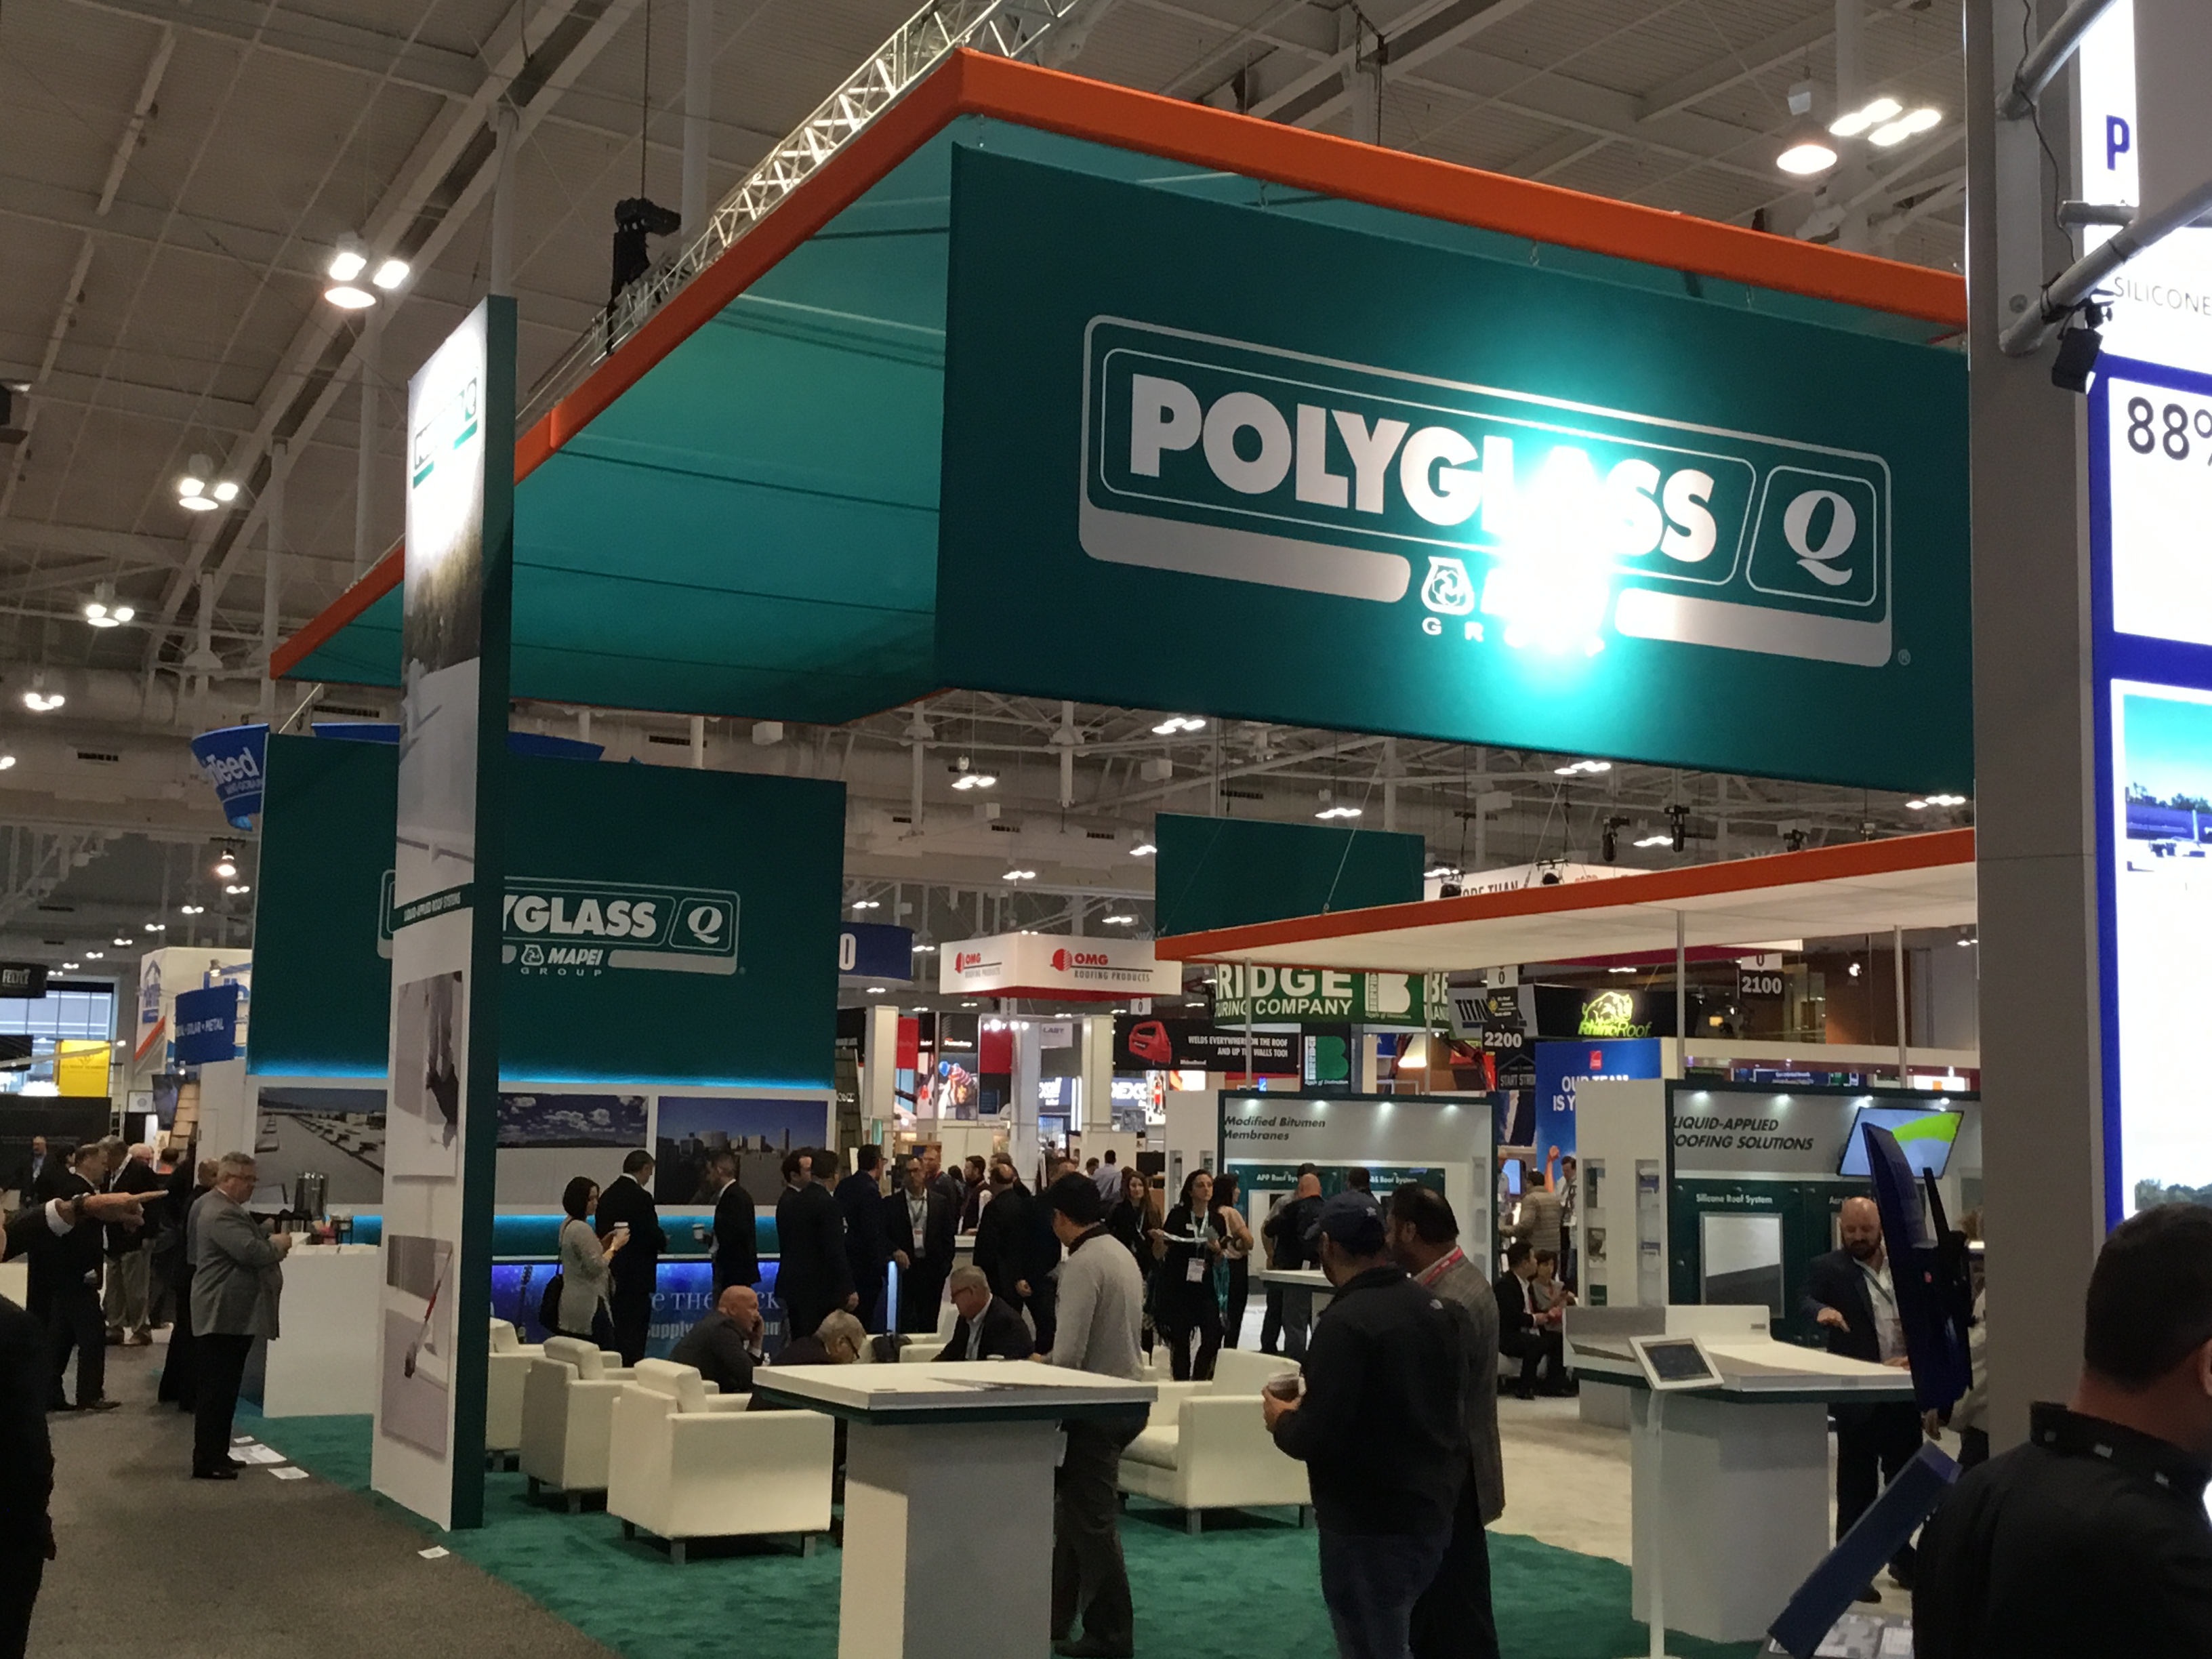 Polyglass at IRE 2019